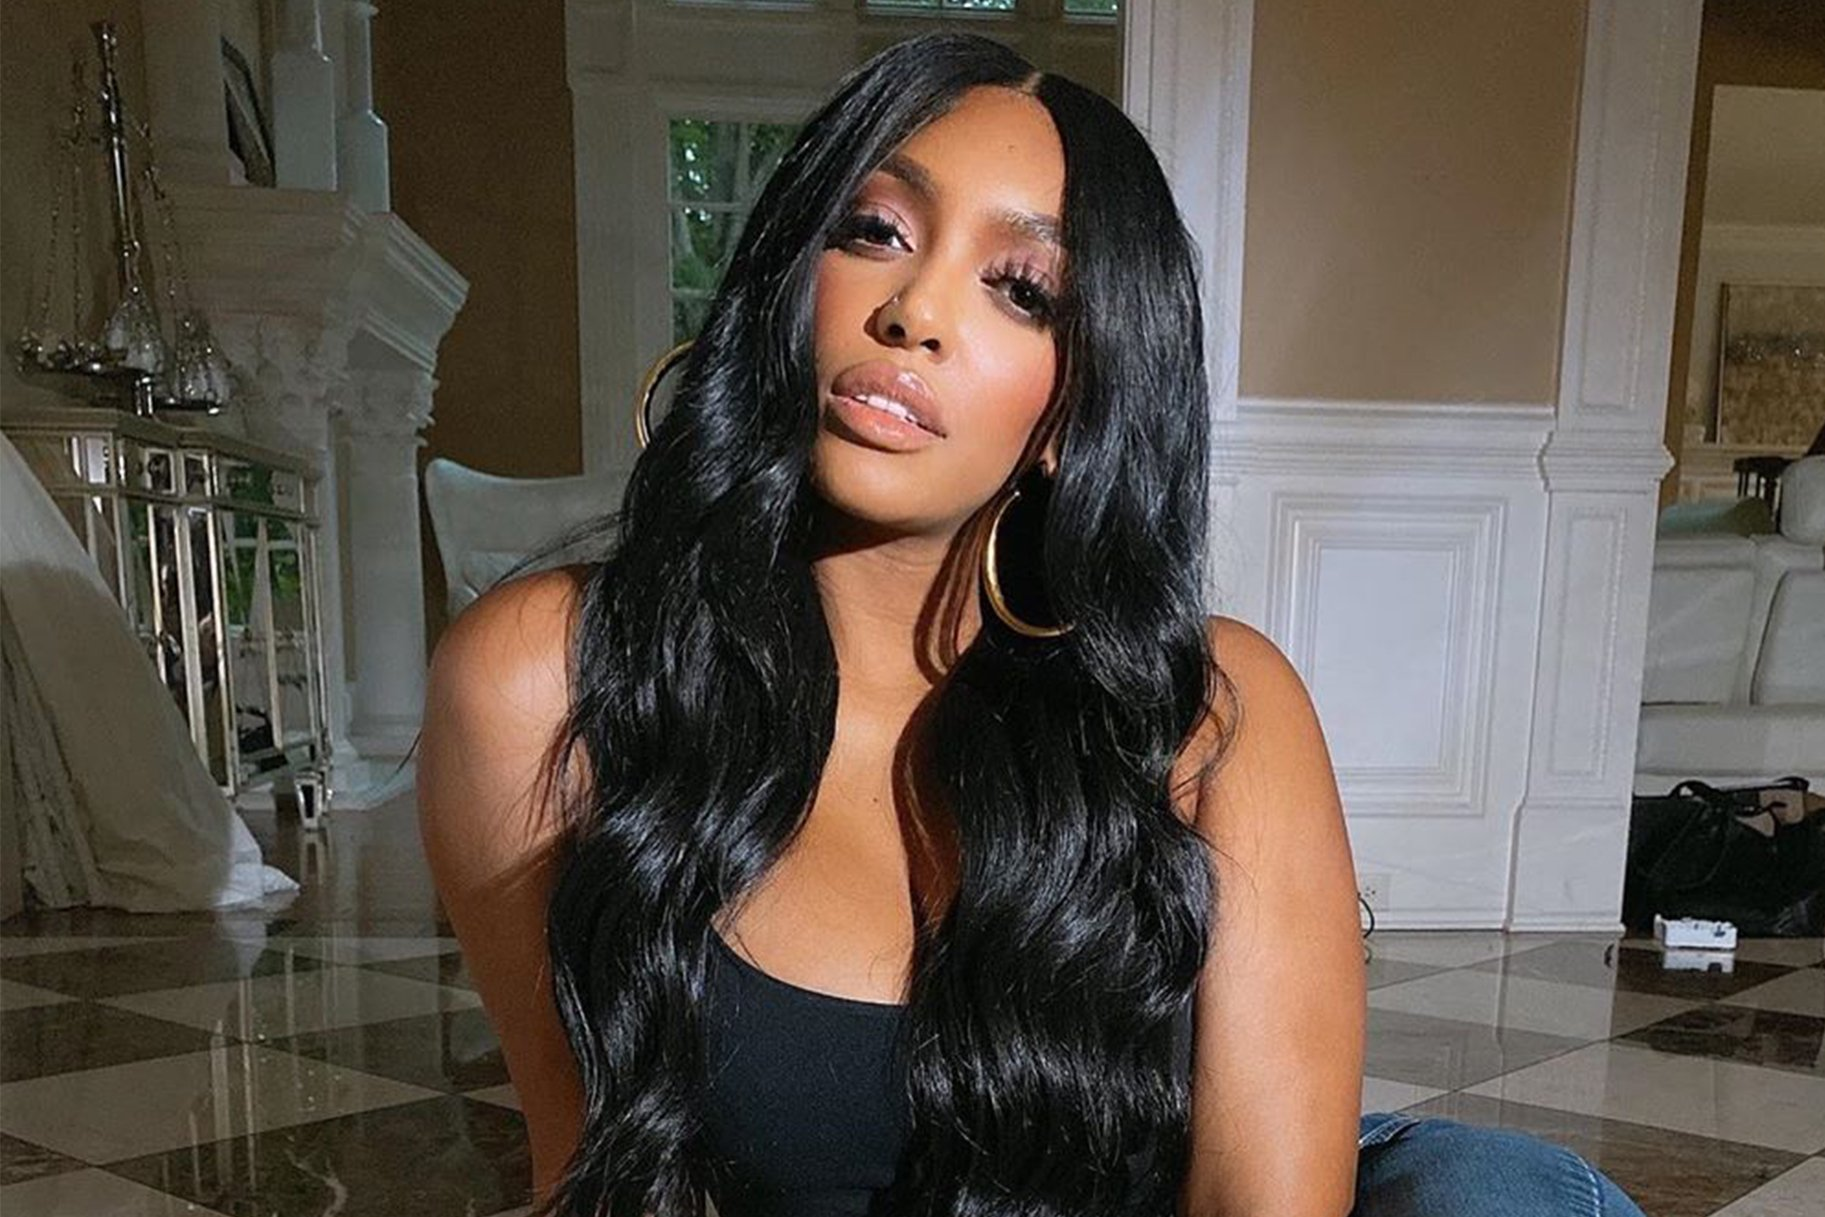 Porsha Williams' Recent Event Dedicated To Breonna Taylor Made Her Fans Emotional: '26 Hours Of Prayer, One Hour For Each Year Breonna Lived'